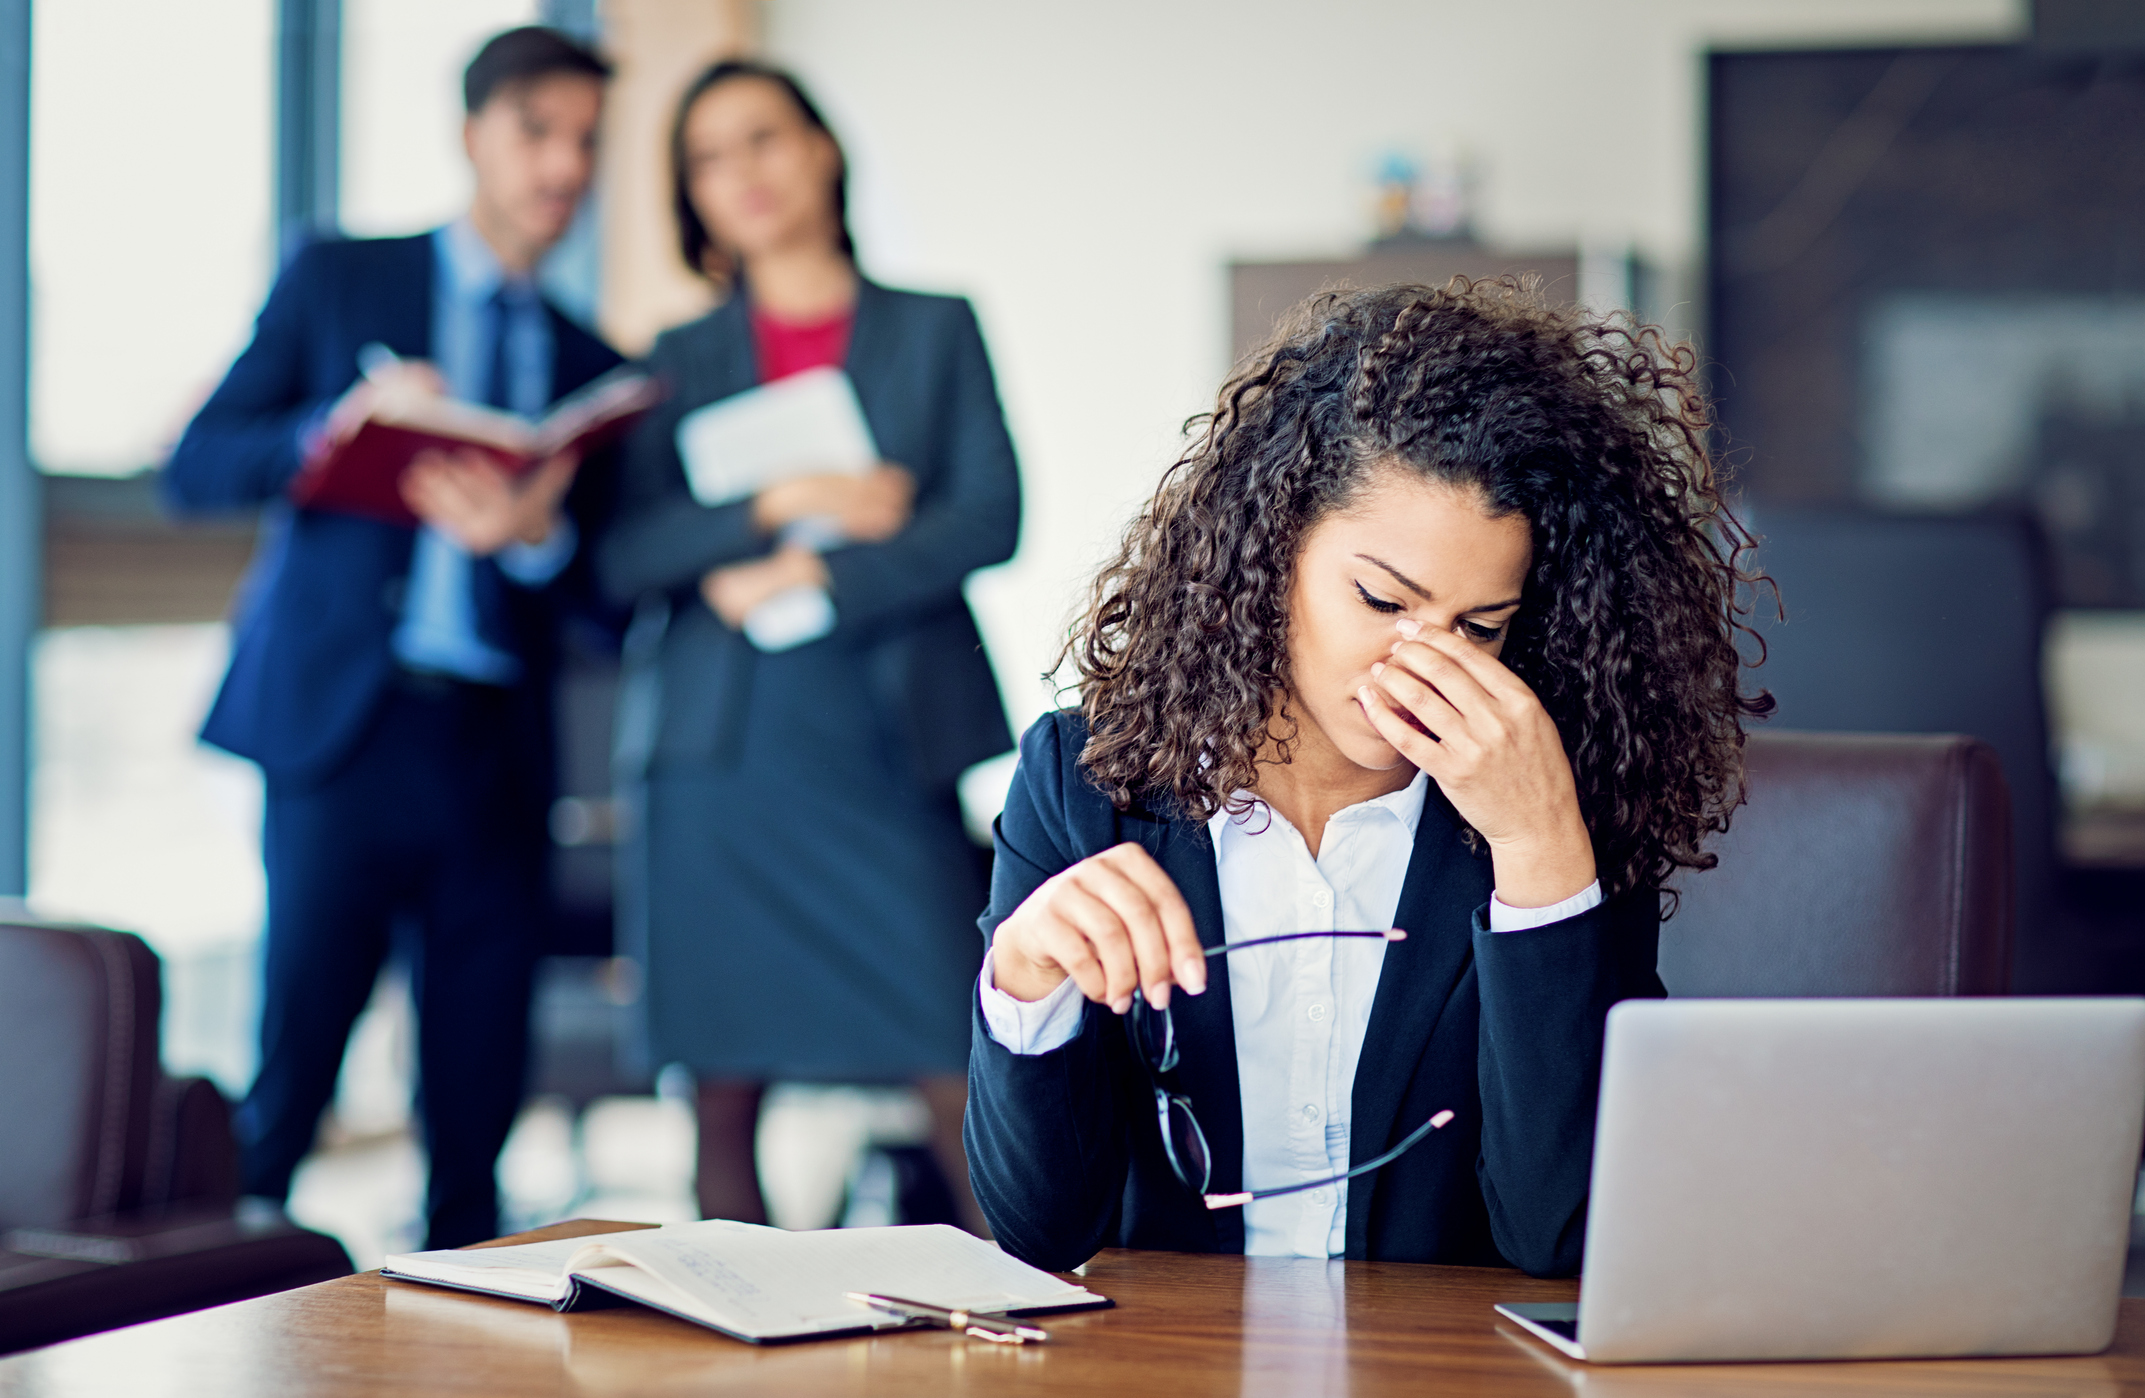 The 5 Most Common Types of Workplace Harassment